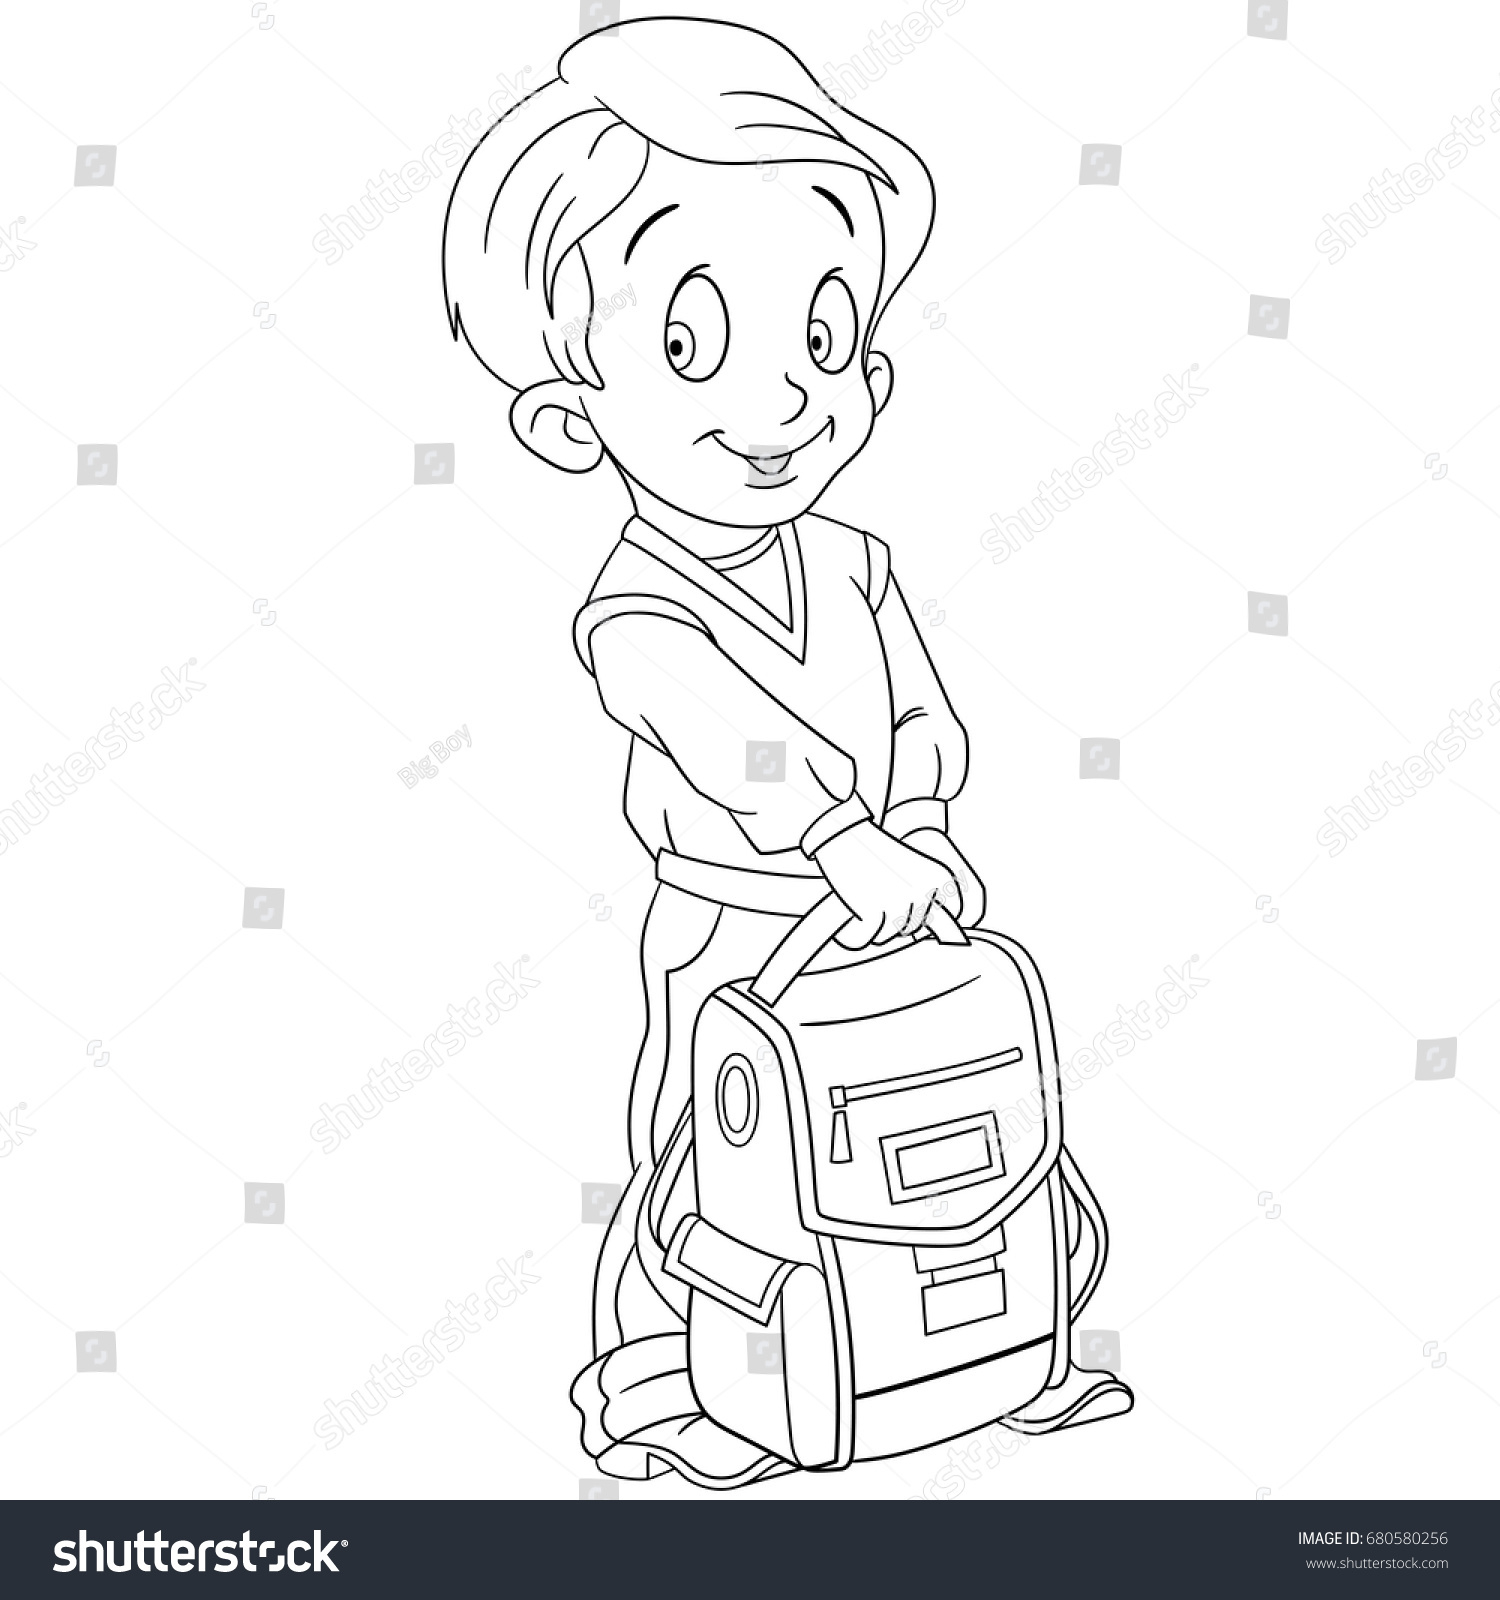 Backpack Coloring Page Coloring Page Schoolboy School Backpack Colouring Stock Vector And